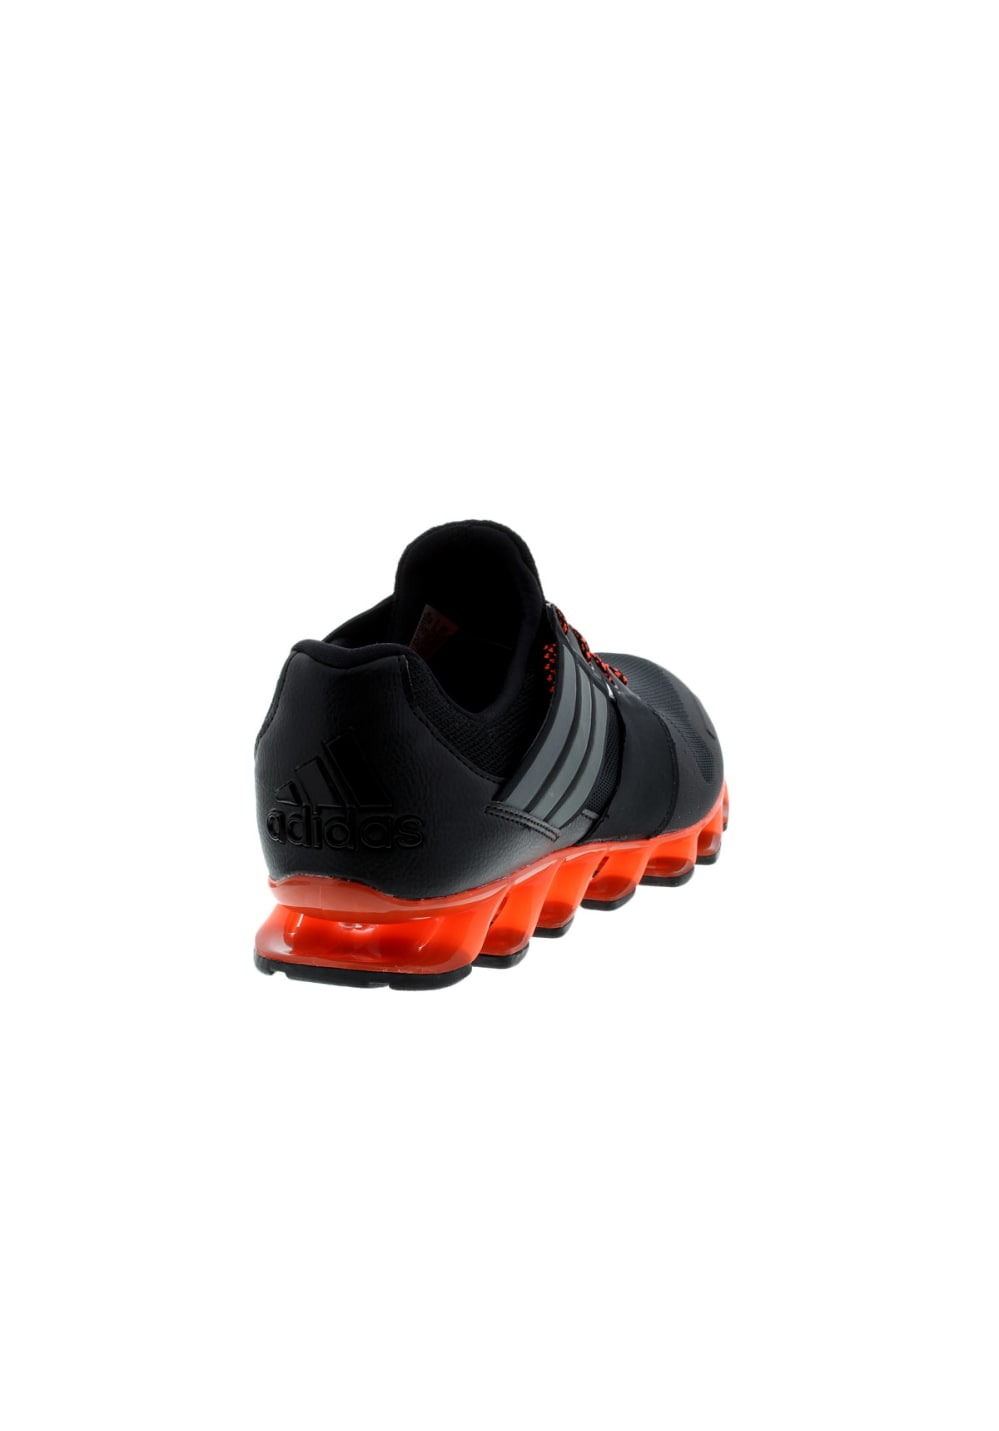 nouveau concept eae53 b3ad2 adidas Springblade Solyce - Chaussures running pour Homme - Noir